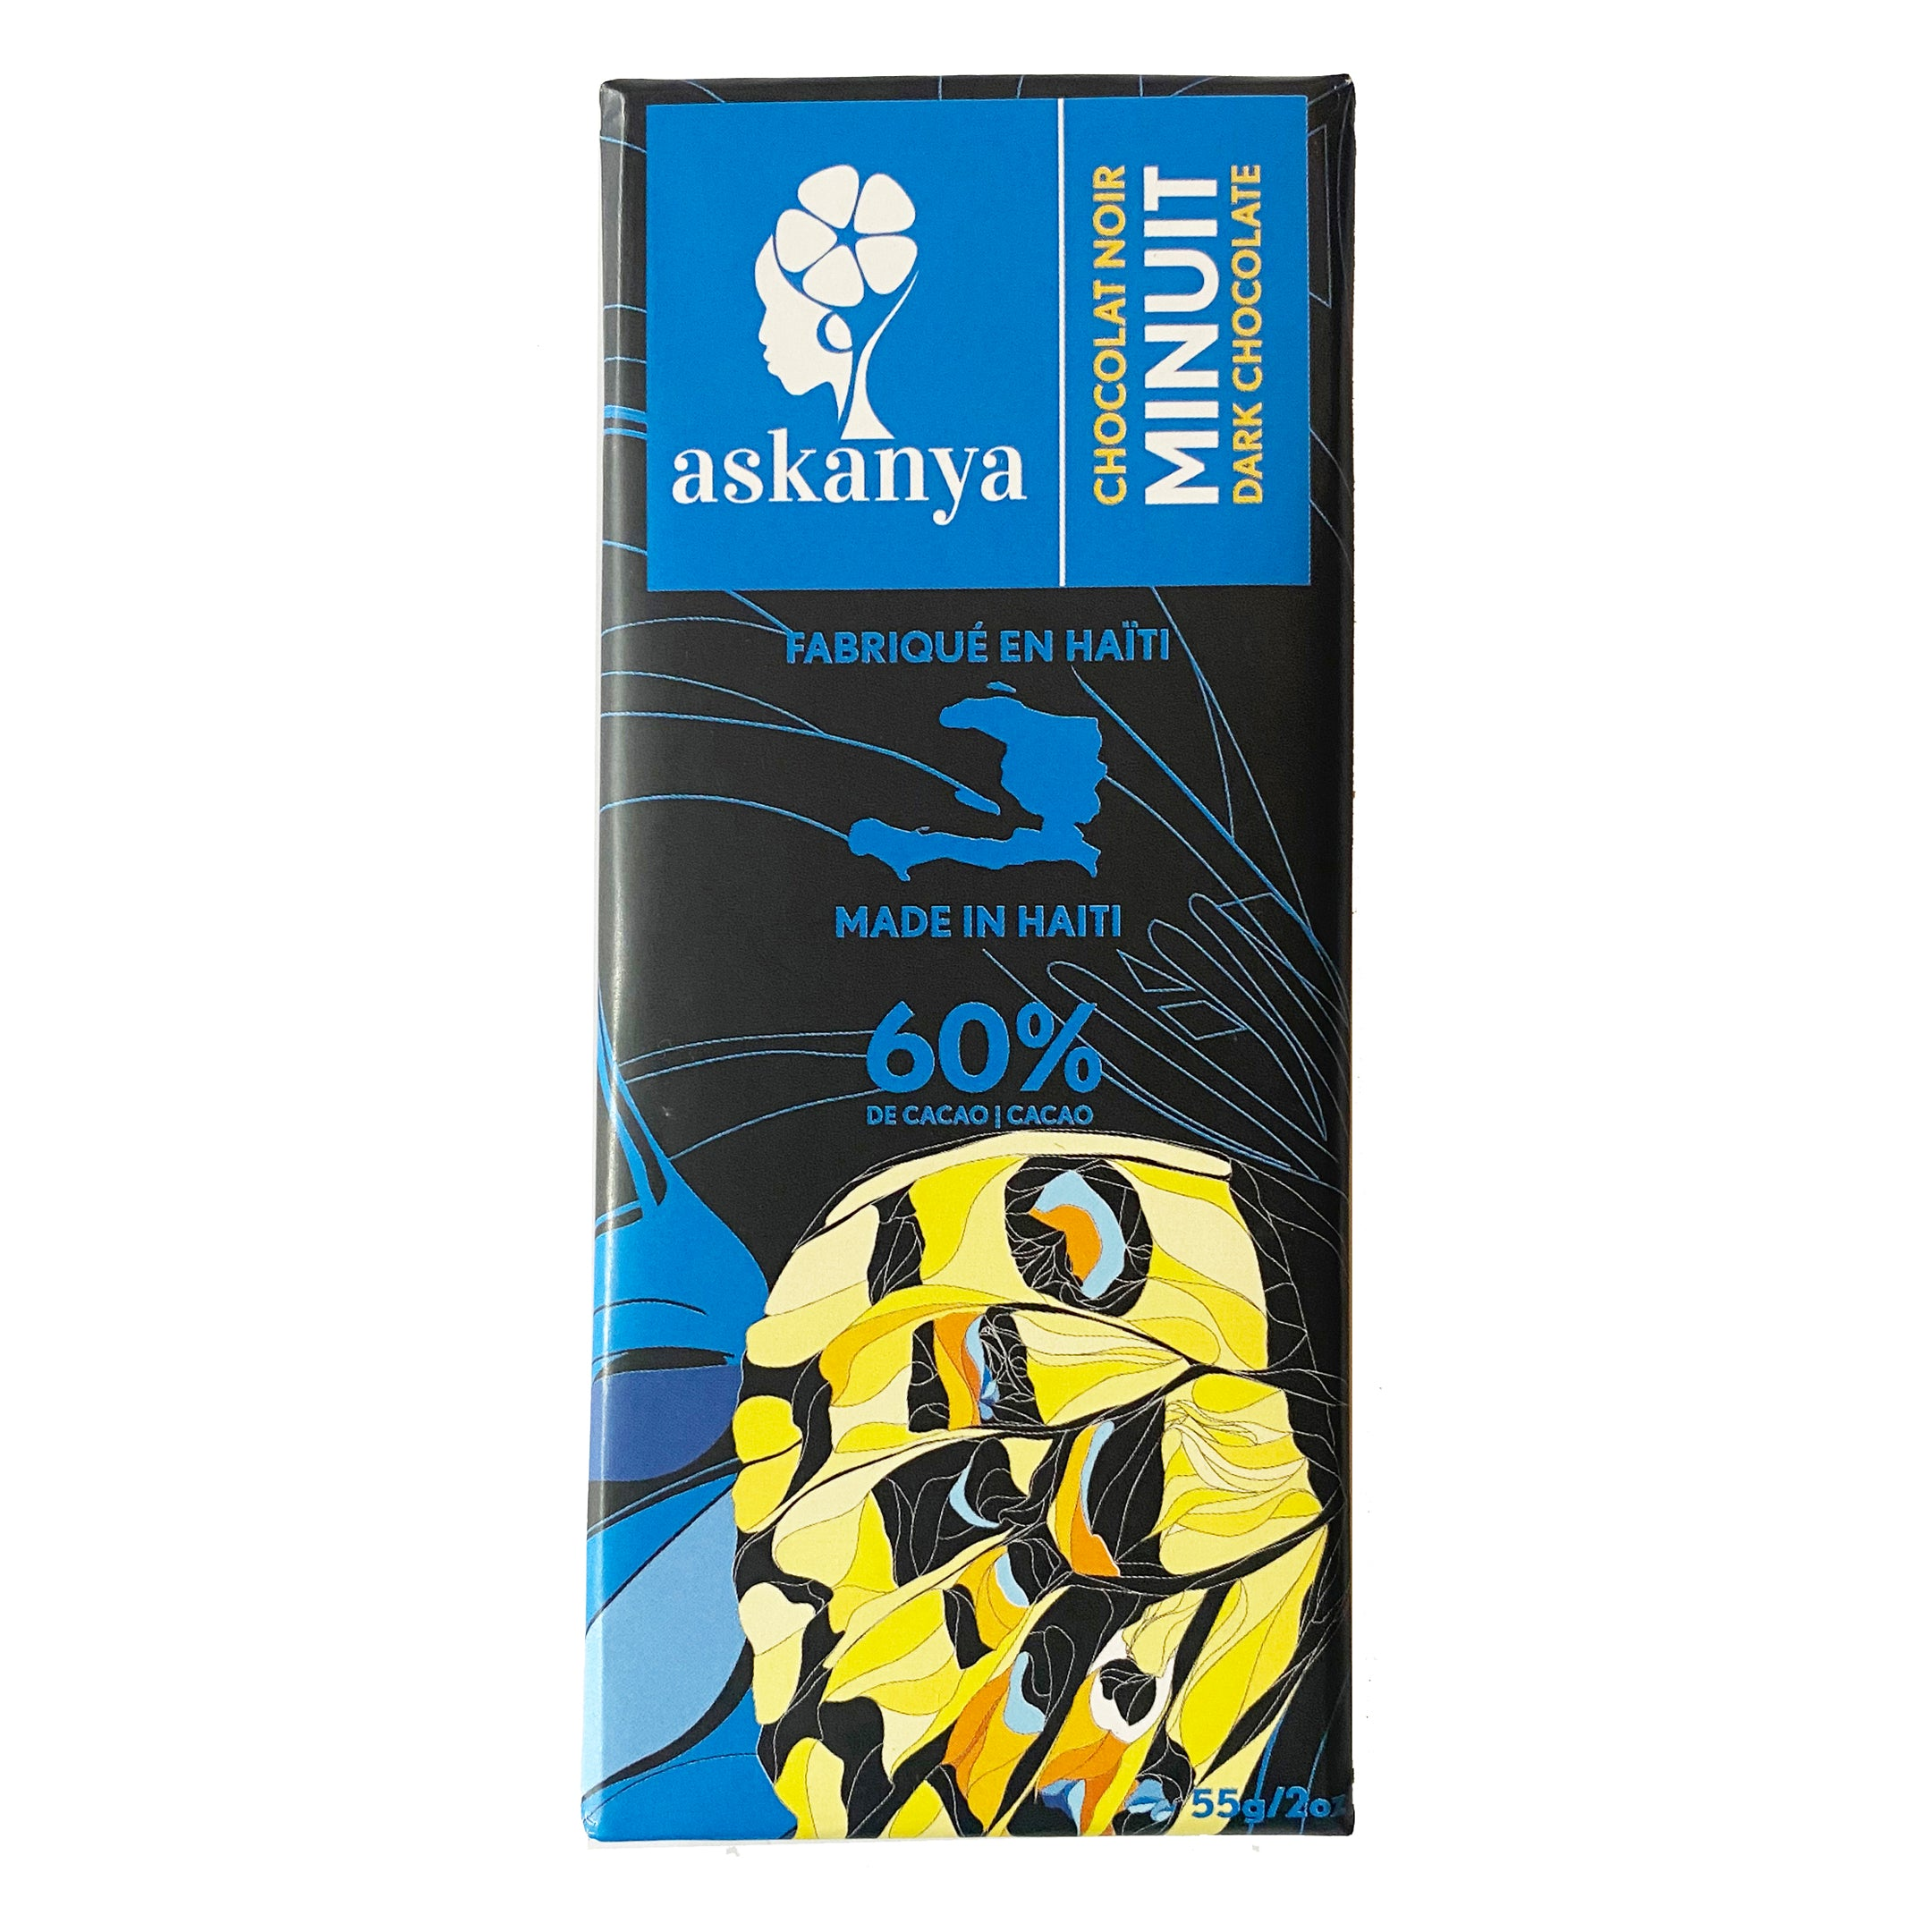 "Black  packaging with yellow, orange, black and blue butterfly's wing (Haitian butterfly). Sticker with company logo (Askanya) and chocolate flavor information - Dark Chocolate  called ""Minuit"". Packaging also shows Haiti country map and cacao percentage of chocolate bar: 60%. Chocolate bar is 55g or 2oz."